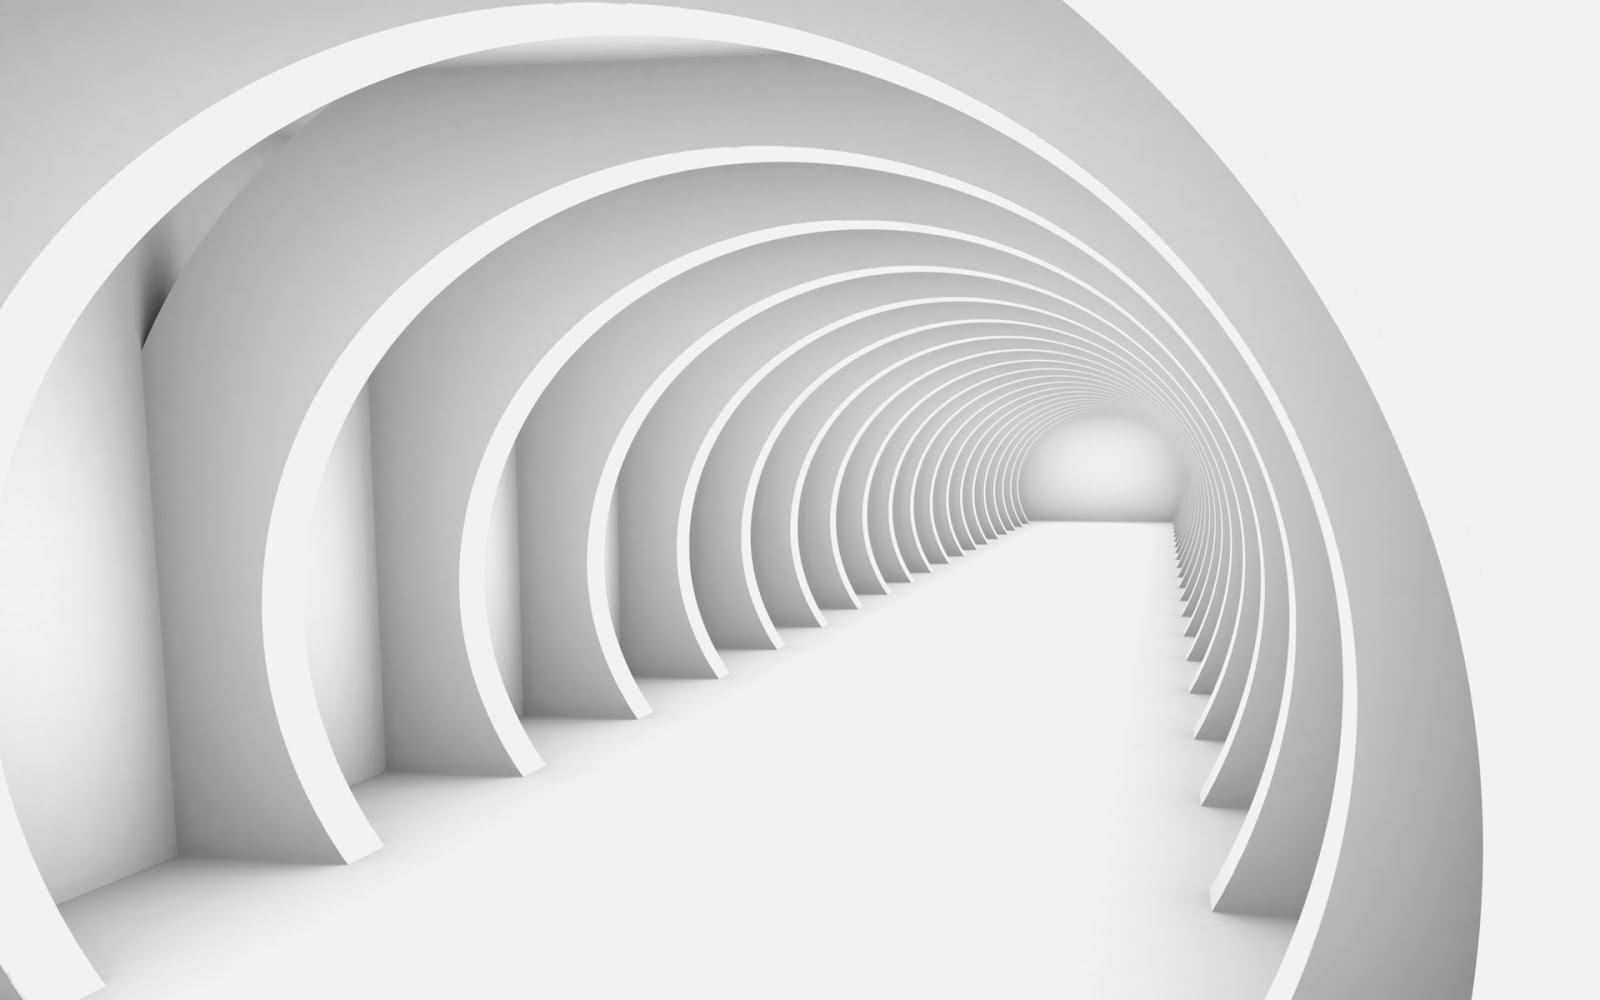 The tunnel of future hd wallpaper the wallpaper database for Wallpaper 3d white